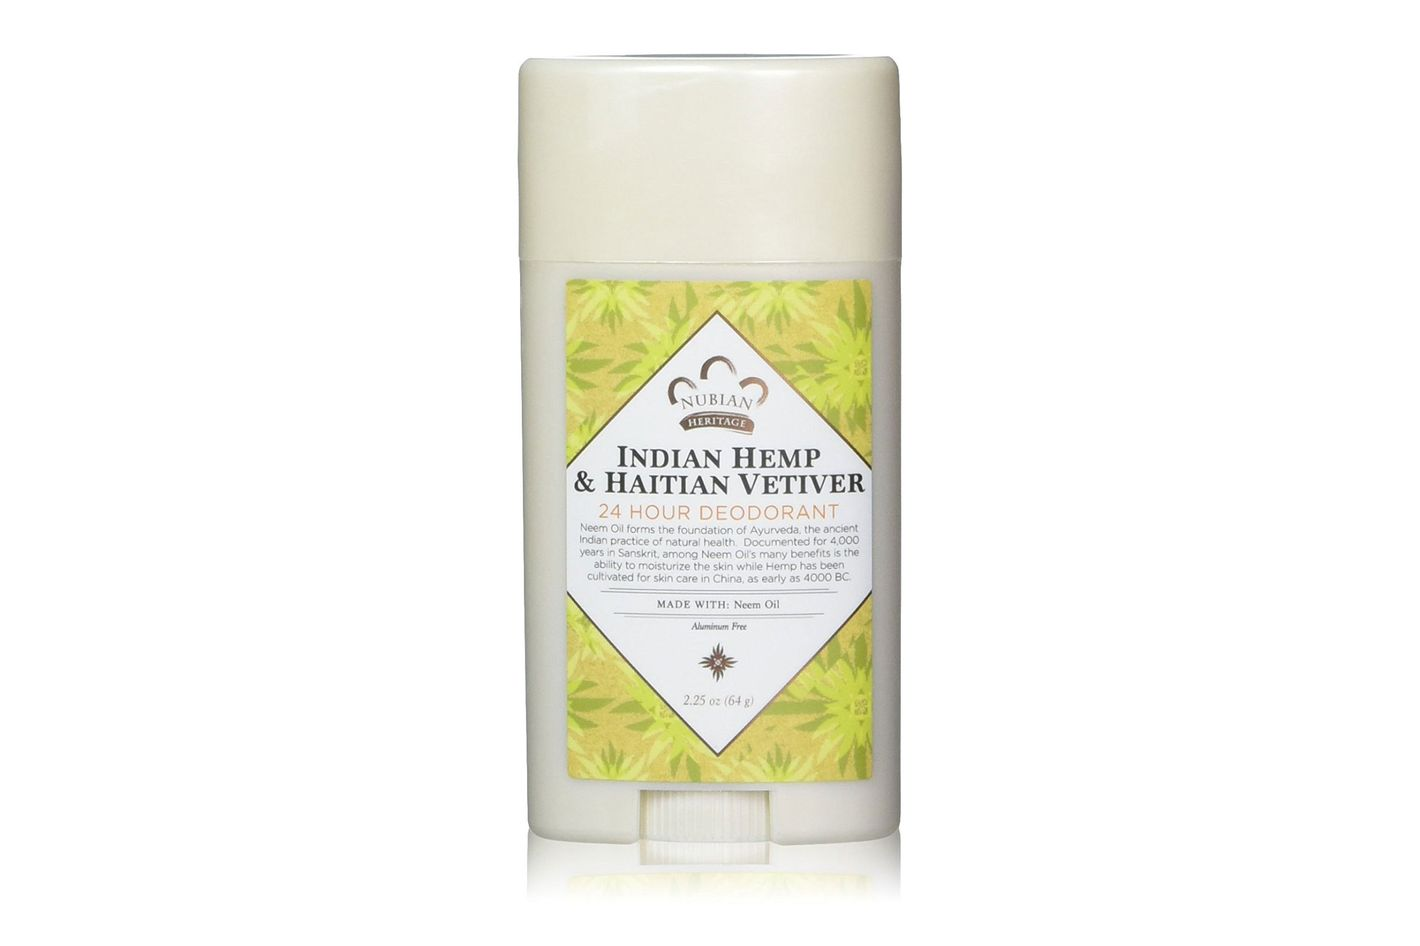 Nubian Heritage Indian Hemp & Haitian Vetiver Deodorant